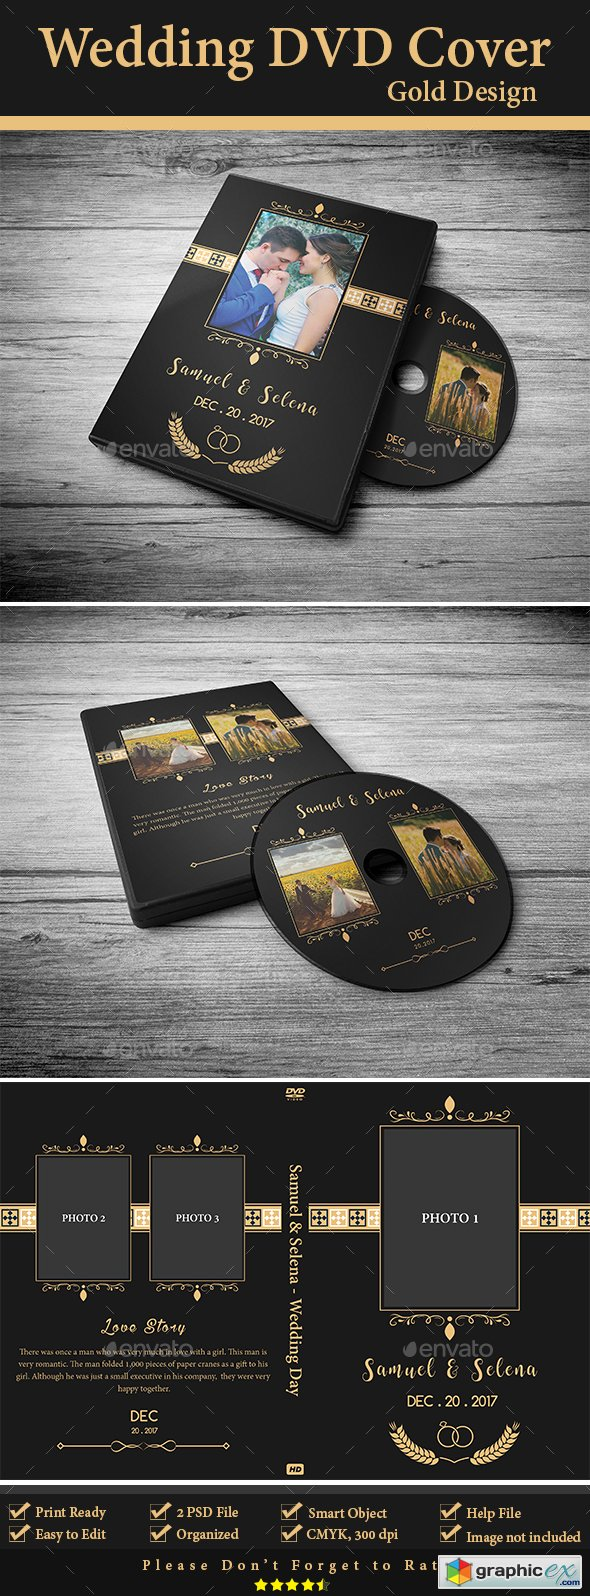 Wedding DVD Cover - Gold Design